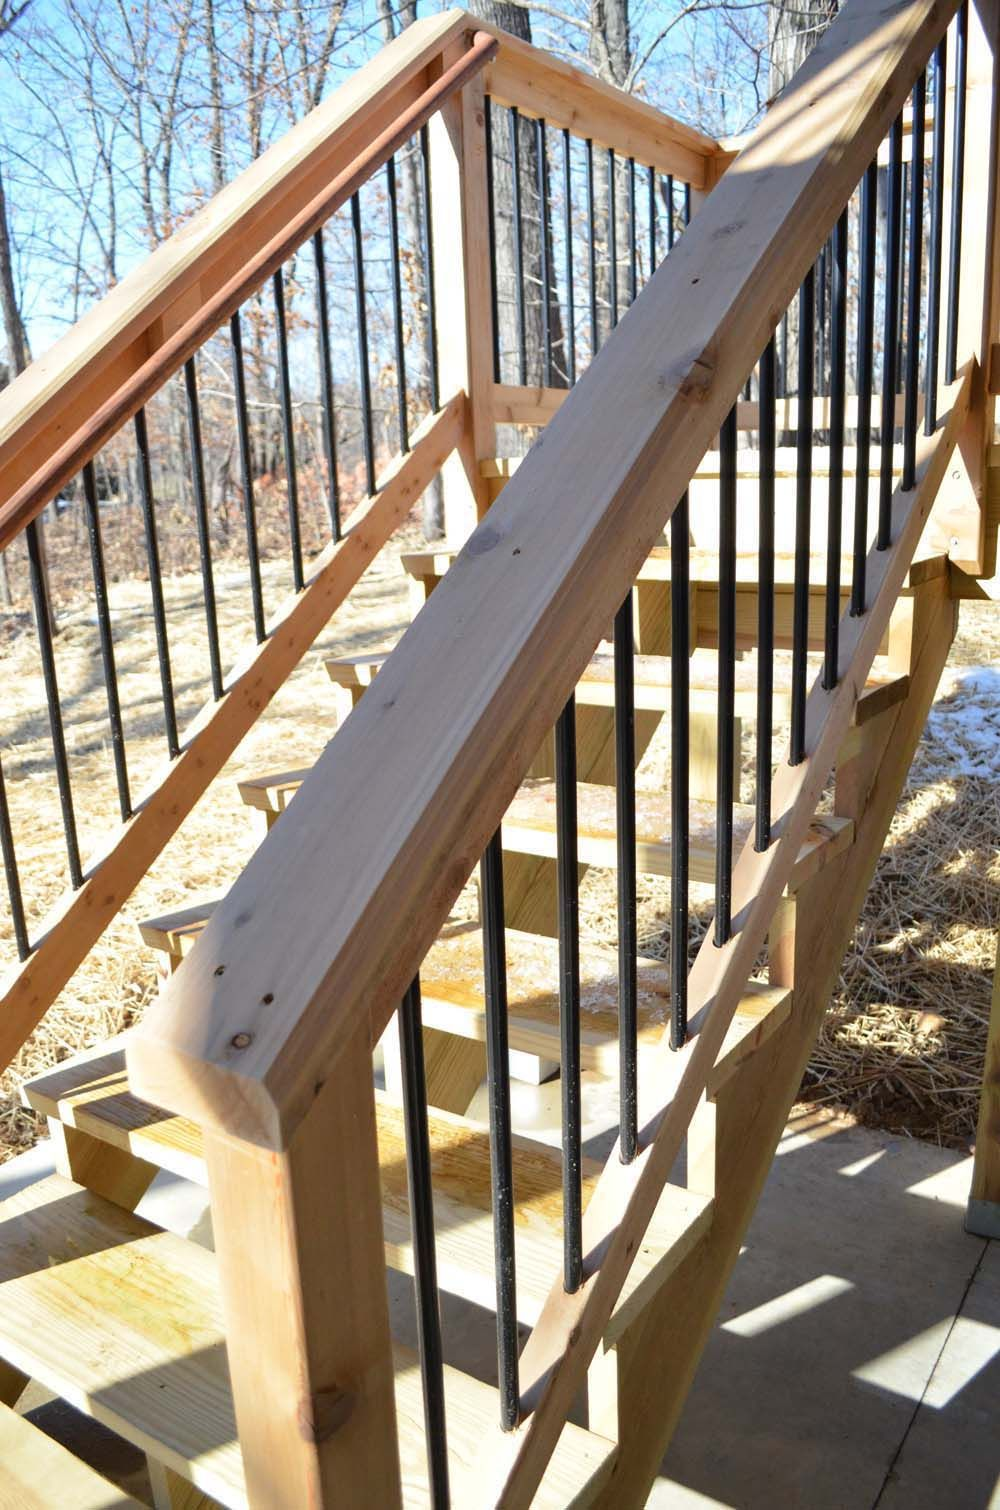 Deck Rail Cedar W/ Aluminum Spindles Deck Stair Railing, Exterior Stair  Railing,